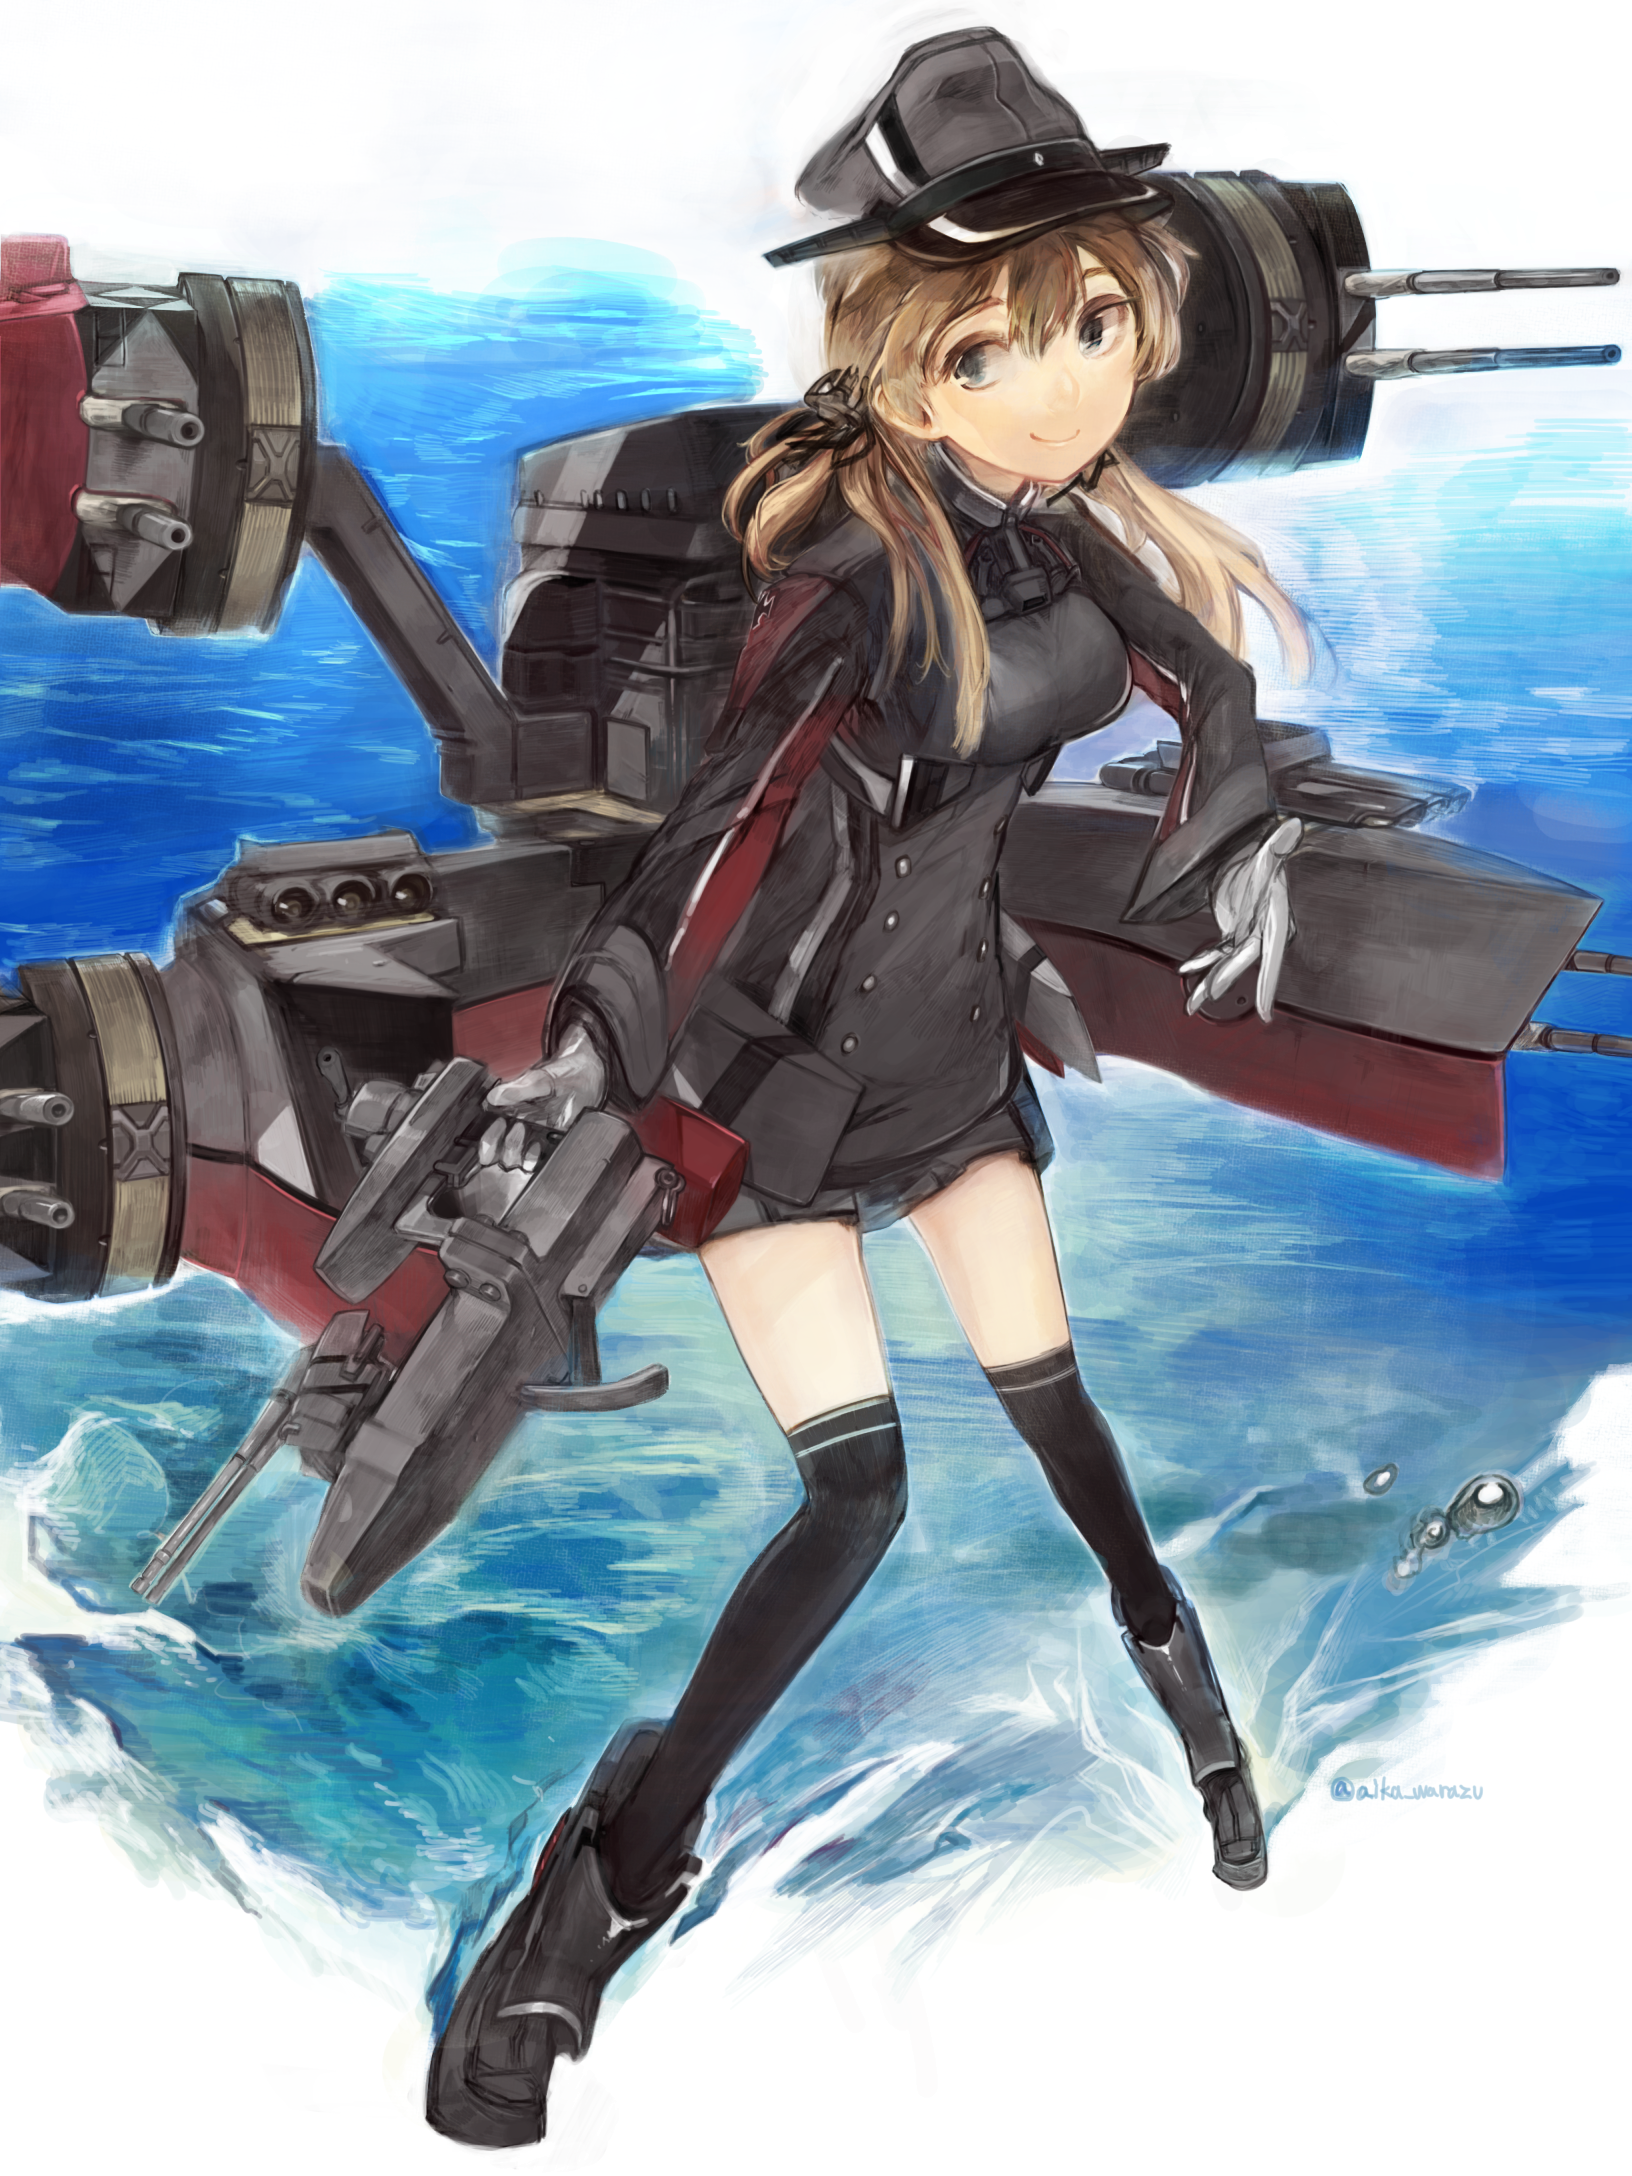 anime_wallpaper_Kantai_Collection_6079196-47291884_p1.png